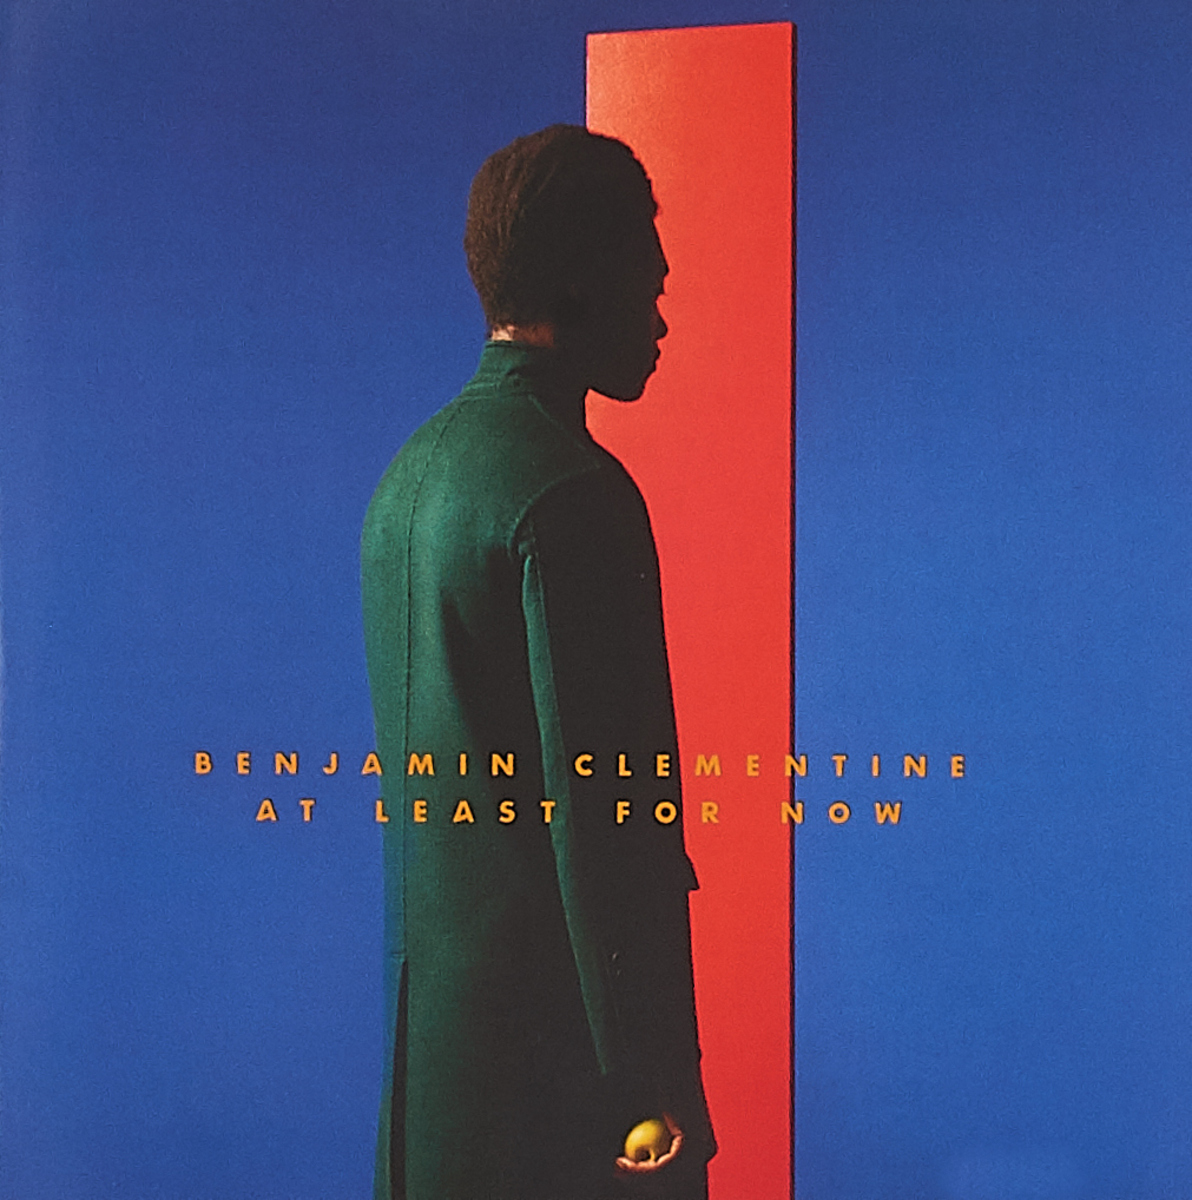 Benjamin Clementine Benjamin Clementine. At Least For Now benjamin clementine benjamin clementine at least for now